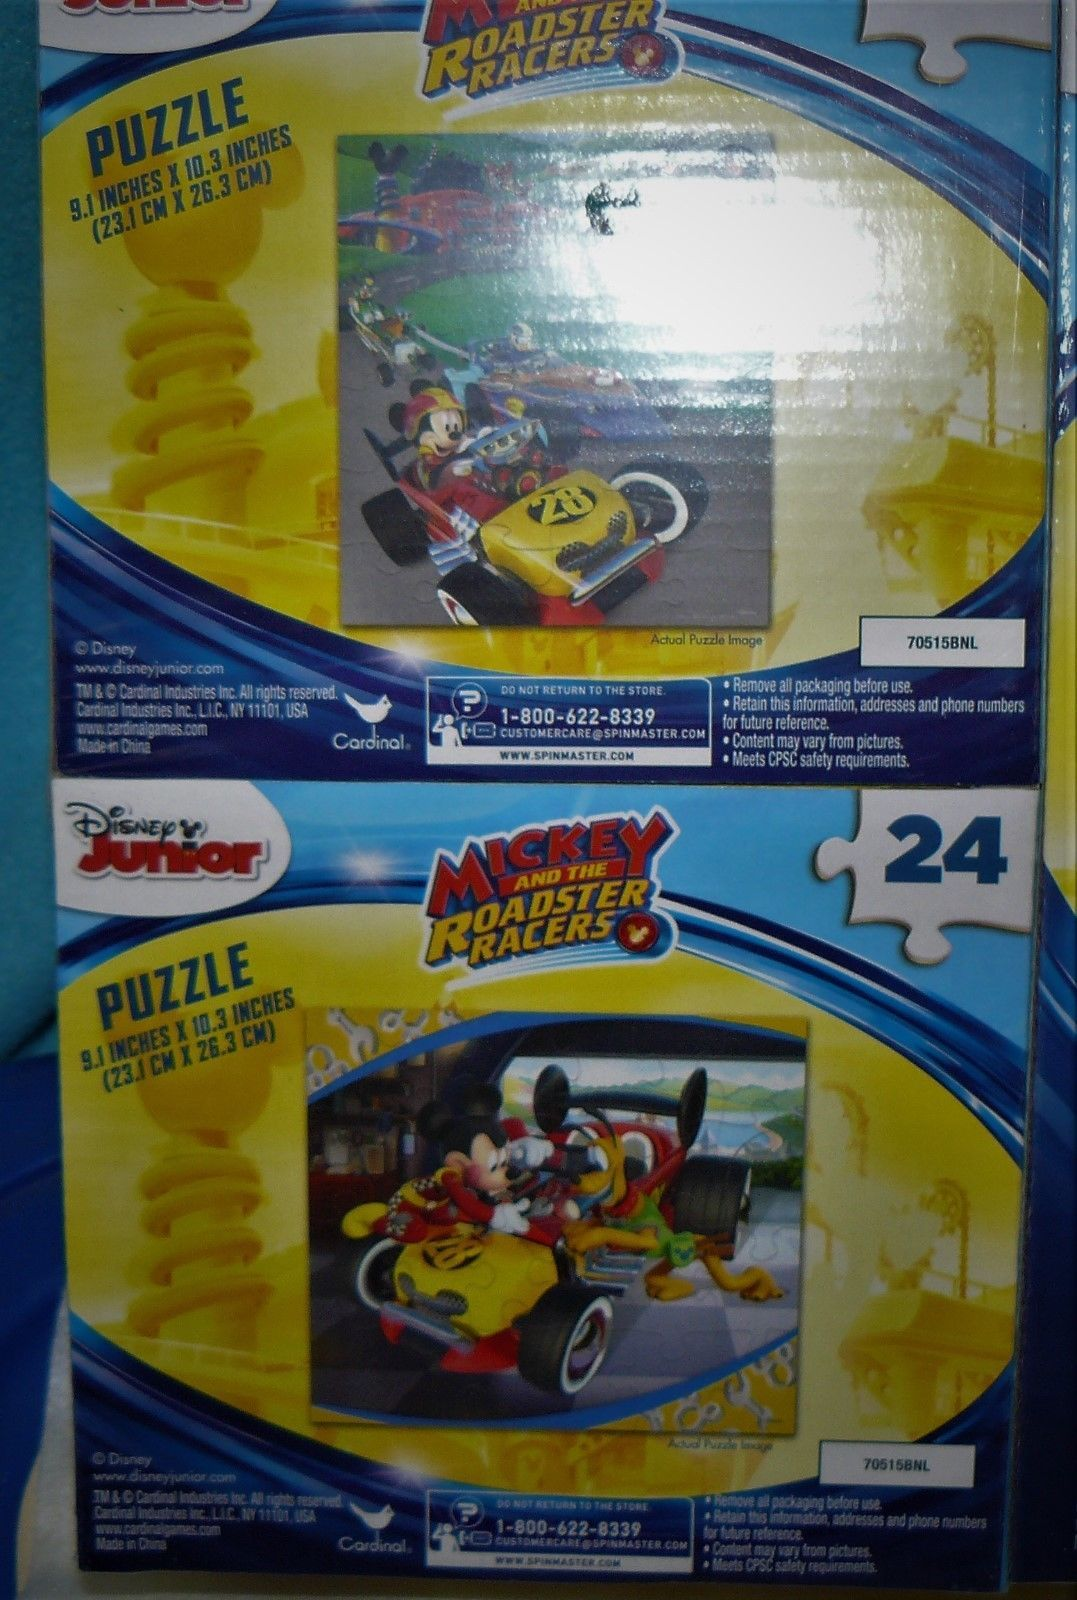 Mickey and Roadster Racers 24 Piece Puzzle 2 Pk